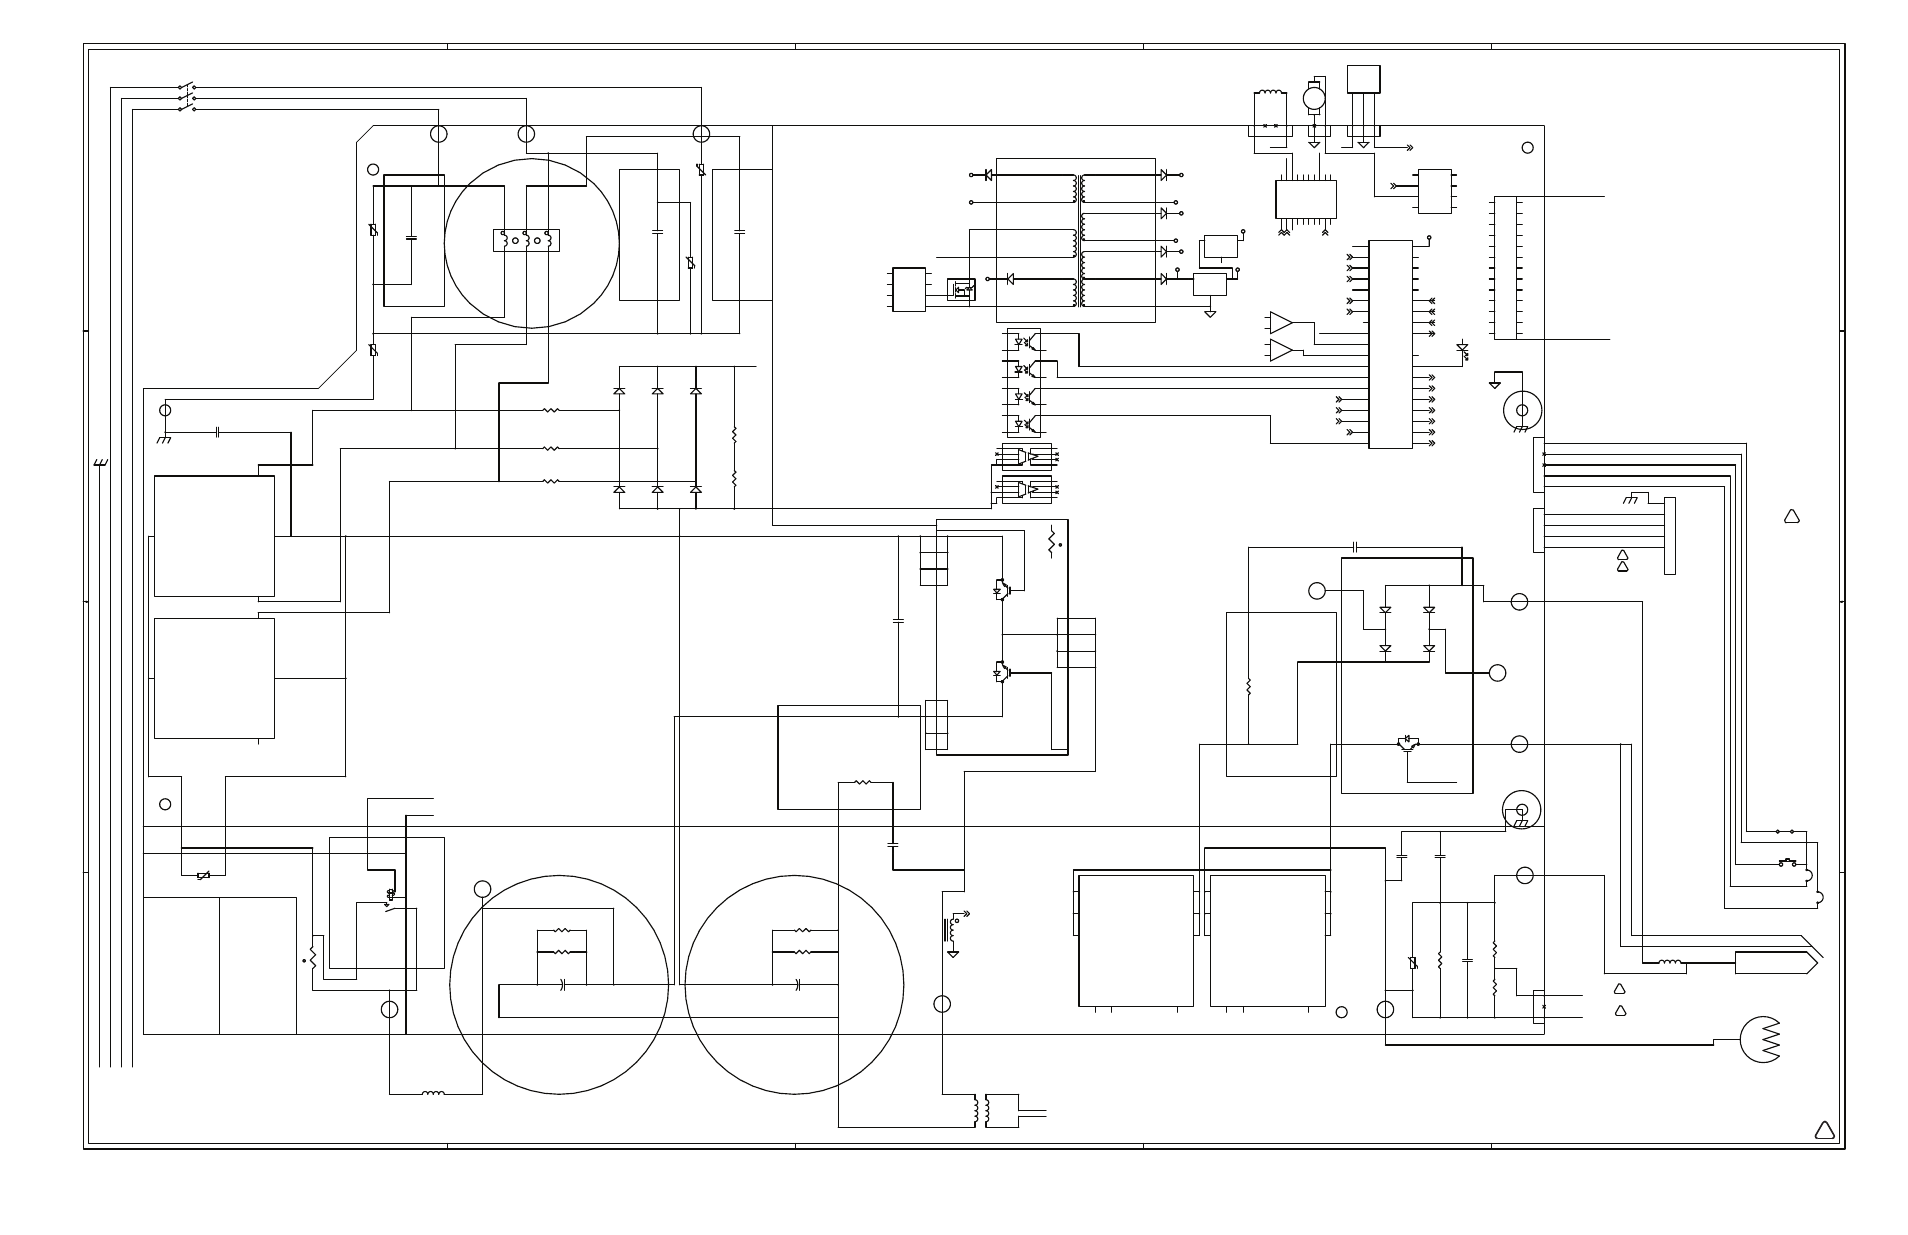 Power Board Wiring Diagram  400 V Ce  Power Board Wiring Diagram  400 V Ce